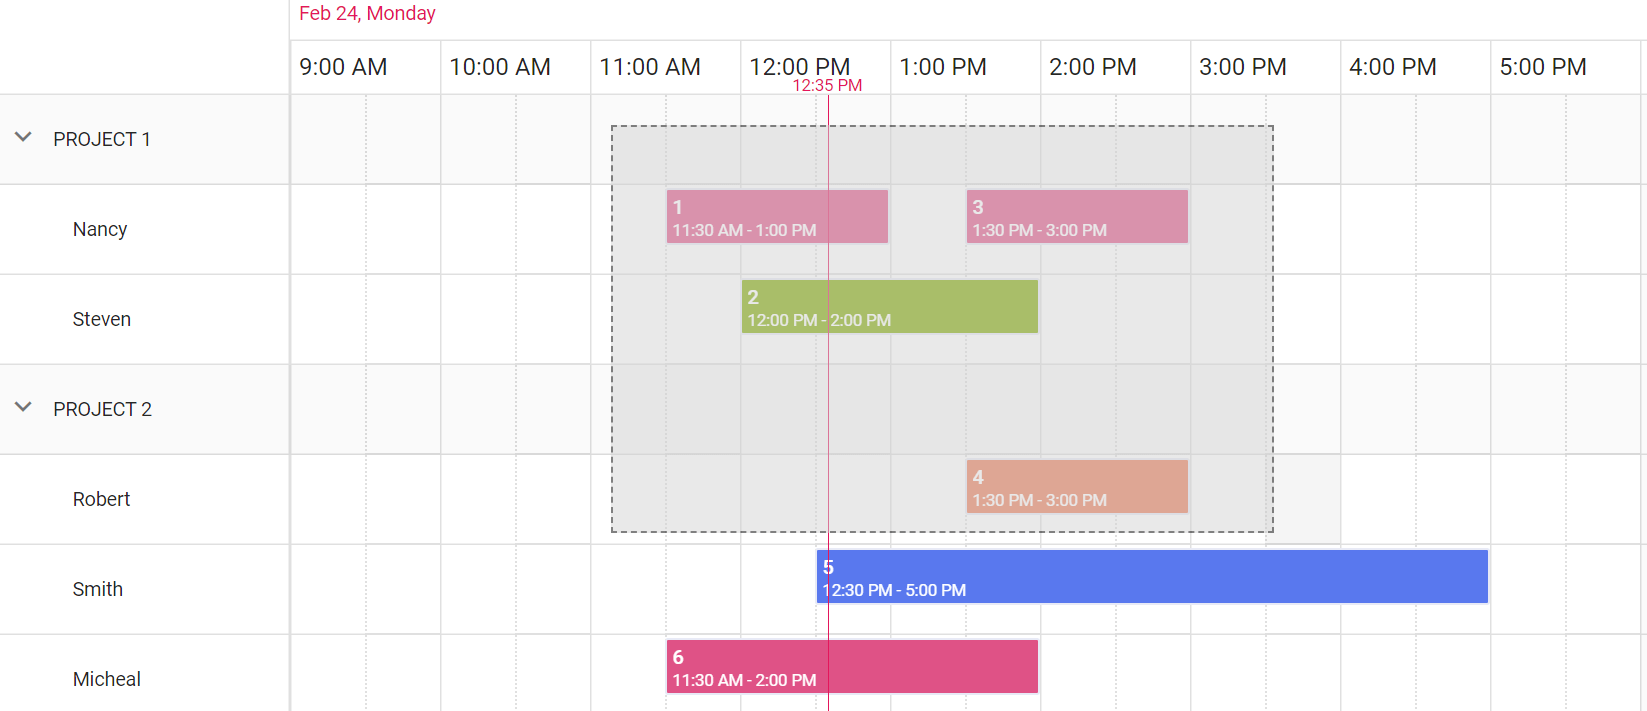 MultiSelection made using mouse in Essential JS 2 Scheduler